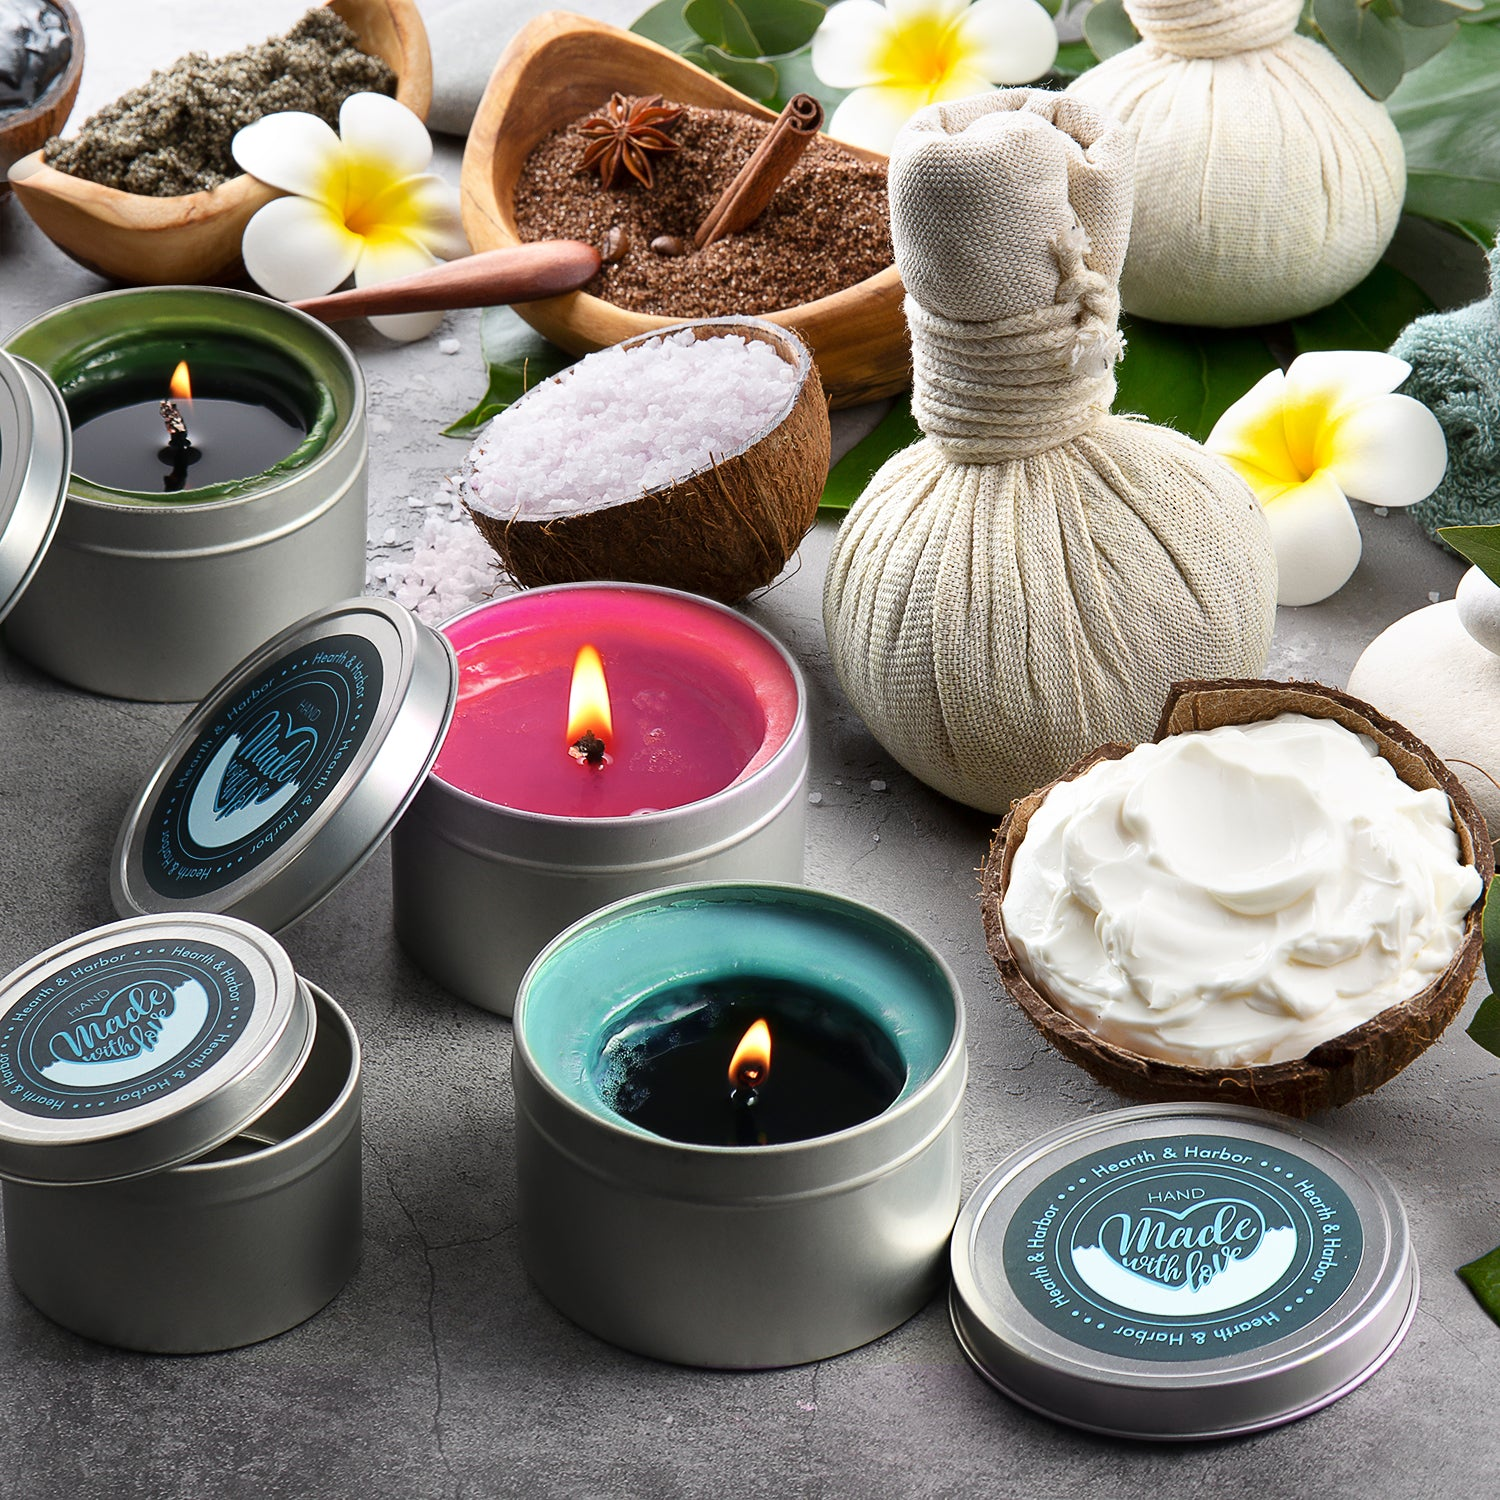 Hearth & Harbor Set of 12 pieces 4 Oz candle containers Custom stickers for lids